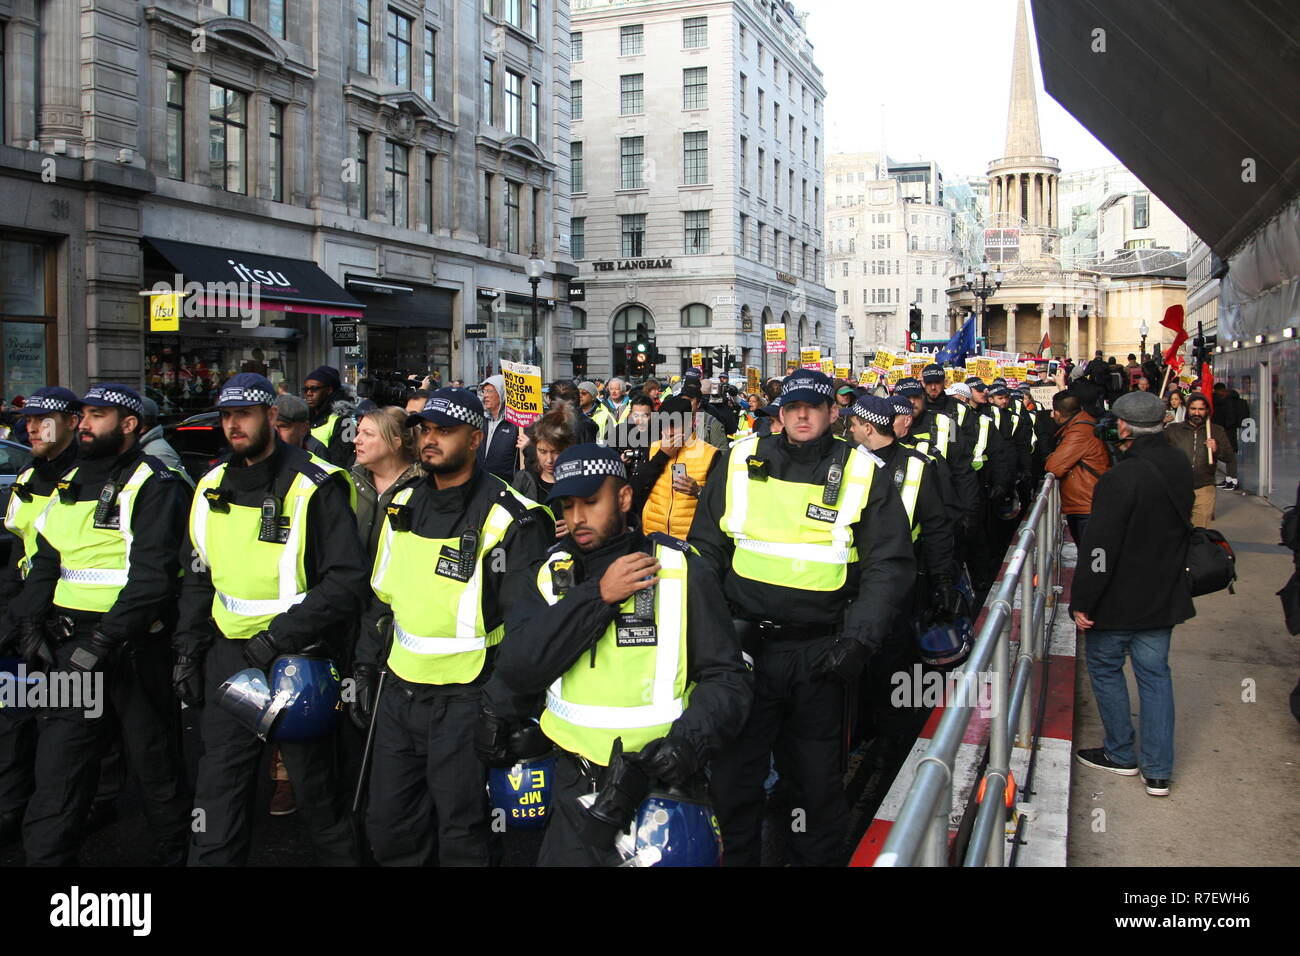 London, UK, 9th December 2018. A demonstration that organisers described as being for all anti-fascists, regardless of their positions on leave/remain on Brexit, opposes 'Tommy Robinson, fascism and racism.   The march from the BBC, Portland Place to Whitehall is a counter protest against one called by Robinson and UKIP, and was heavily policed. Roland Ravenhill / Alamy Live News - Stock Image